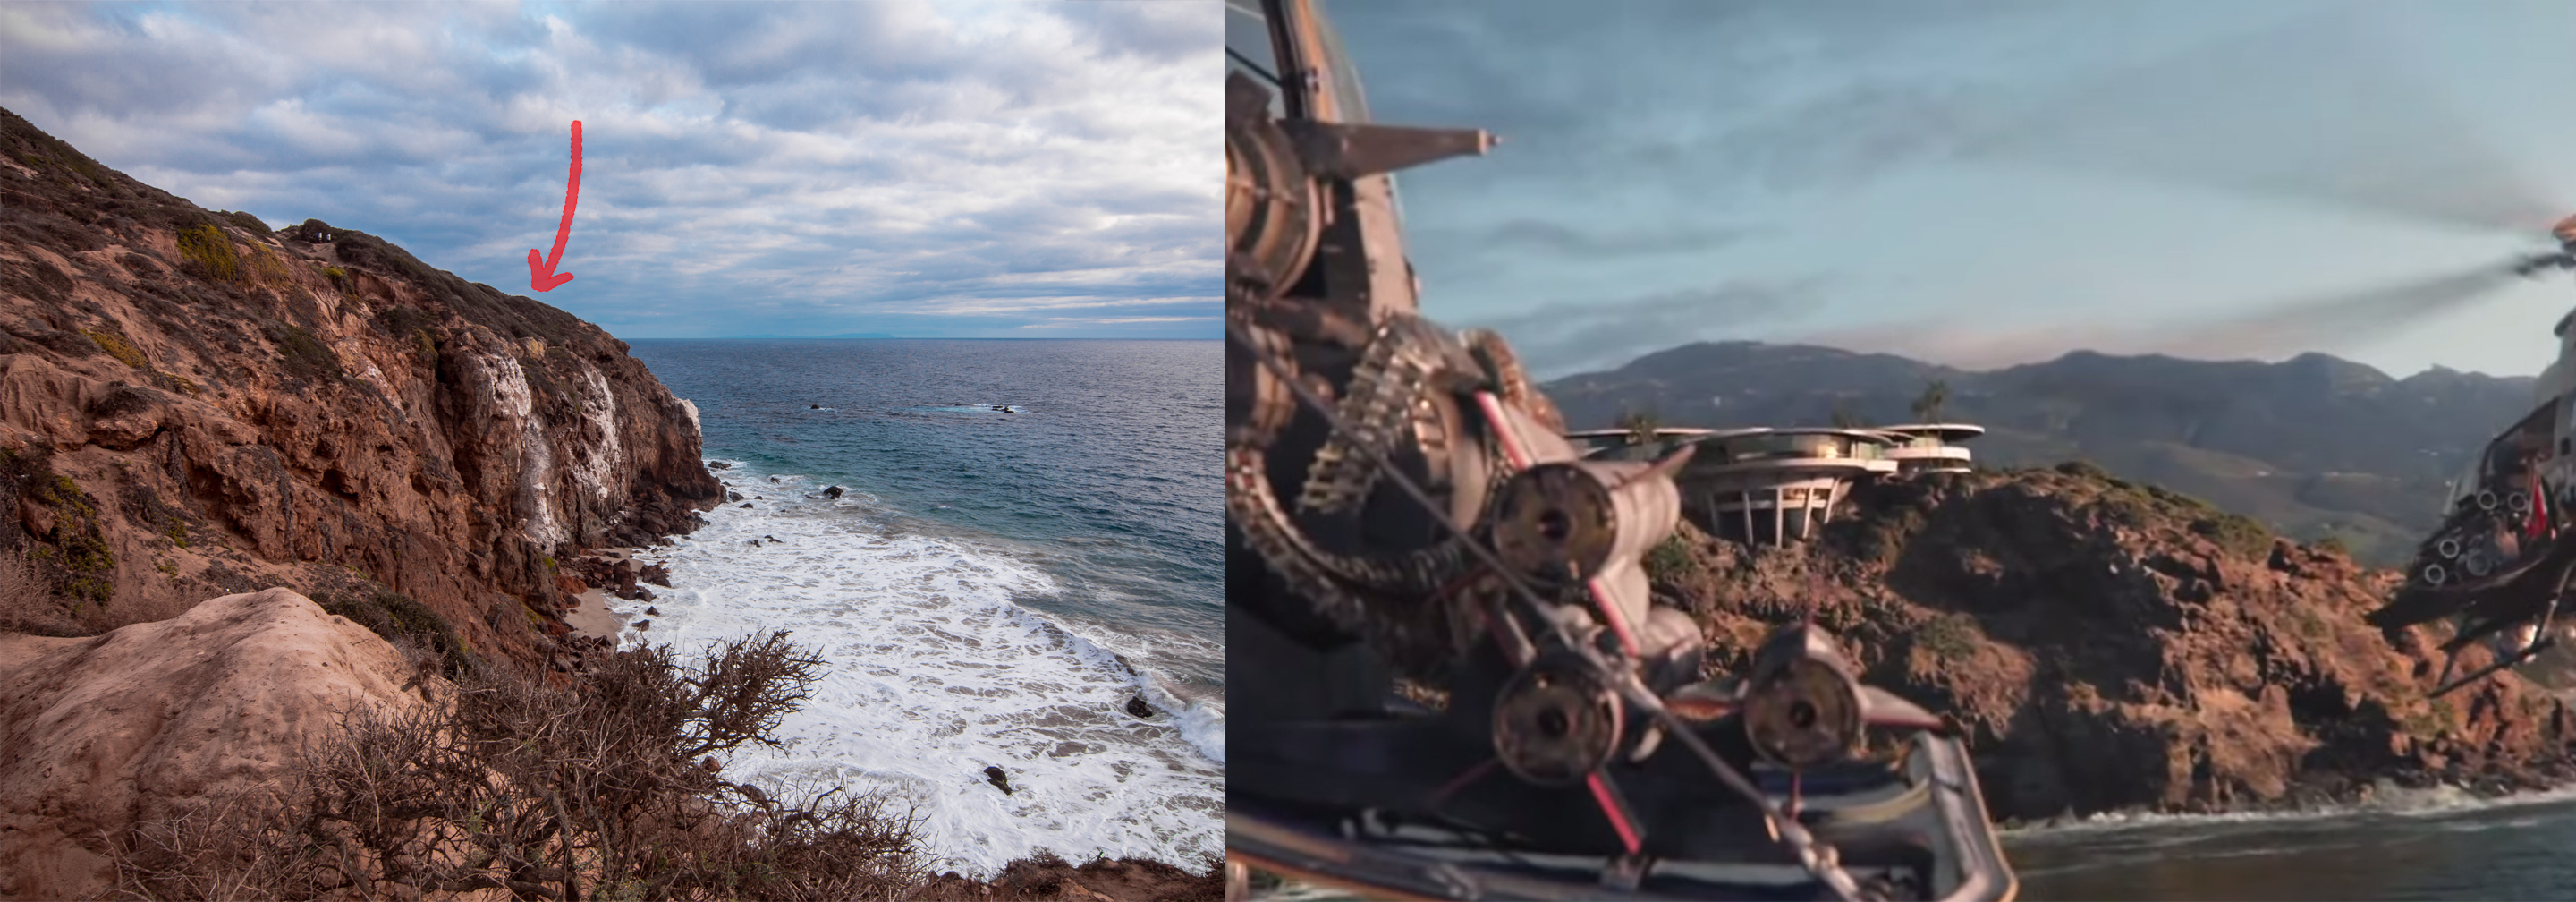 Tony Stark Iron Man Malibu House Comparison Road Trip Randy